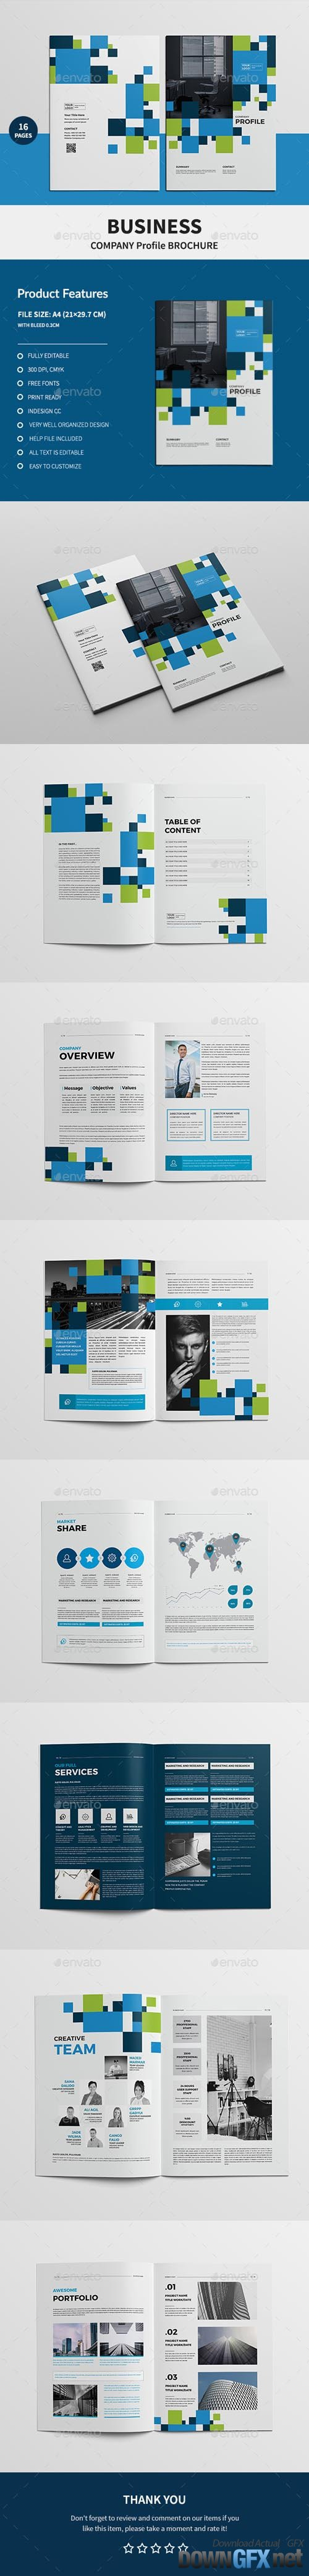 Business Company Profile Brochure 19885206